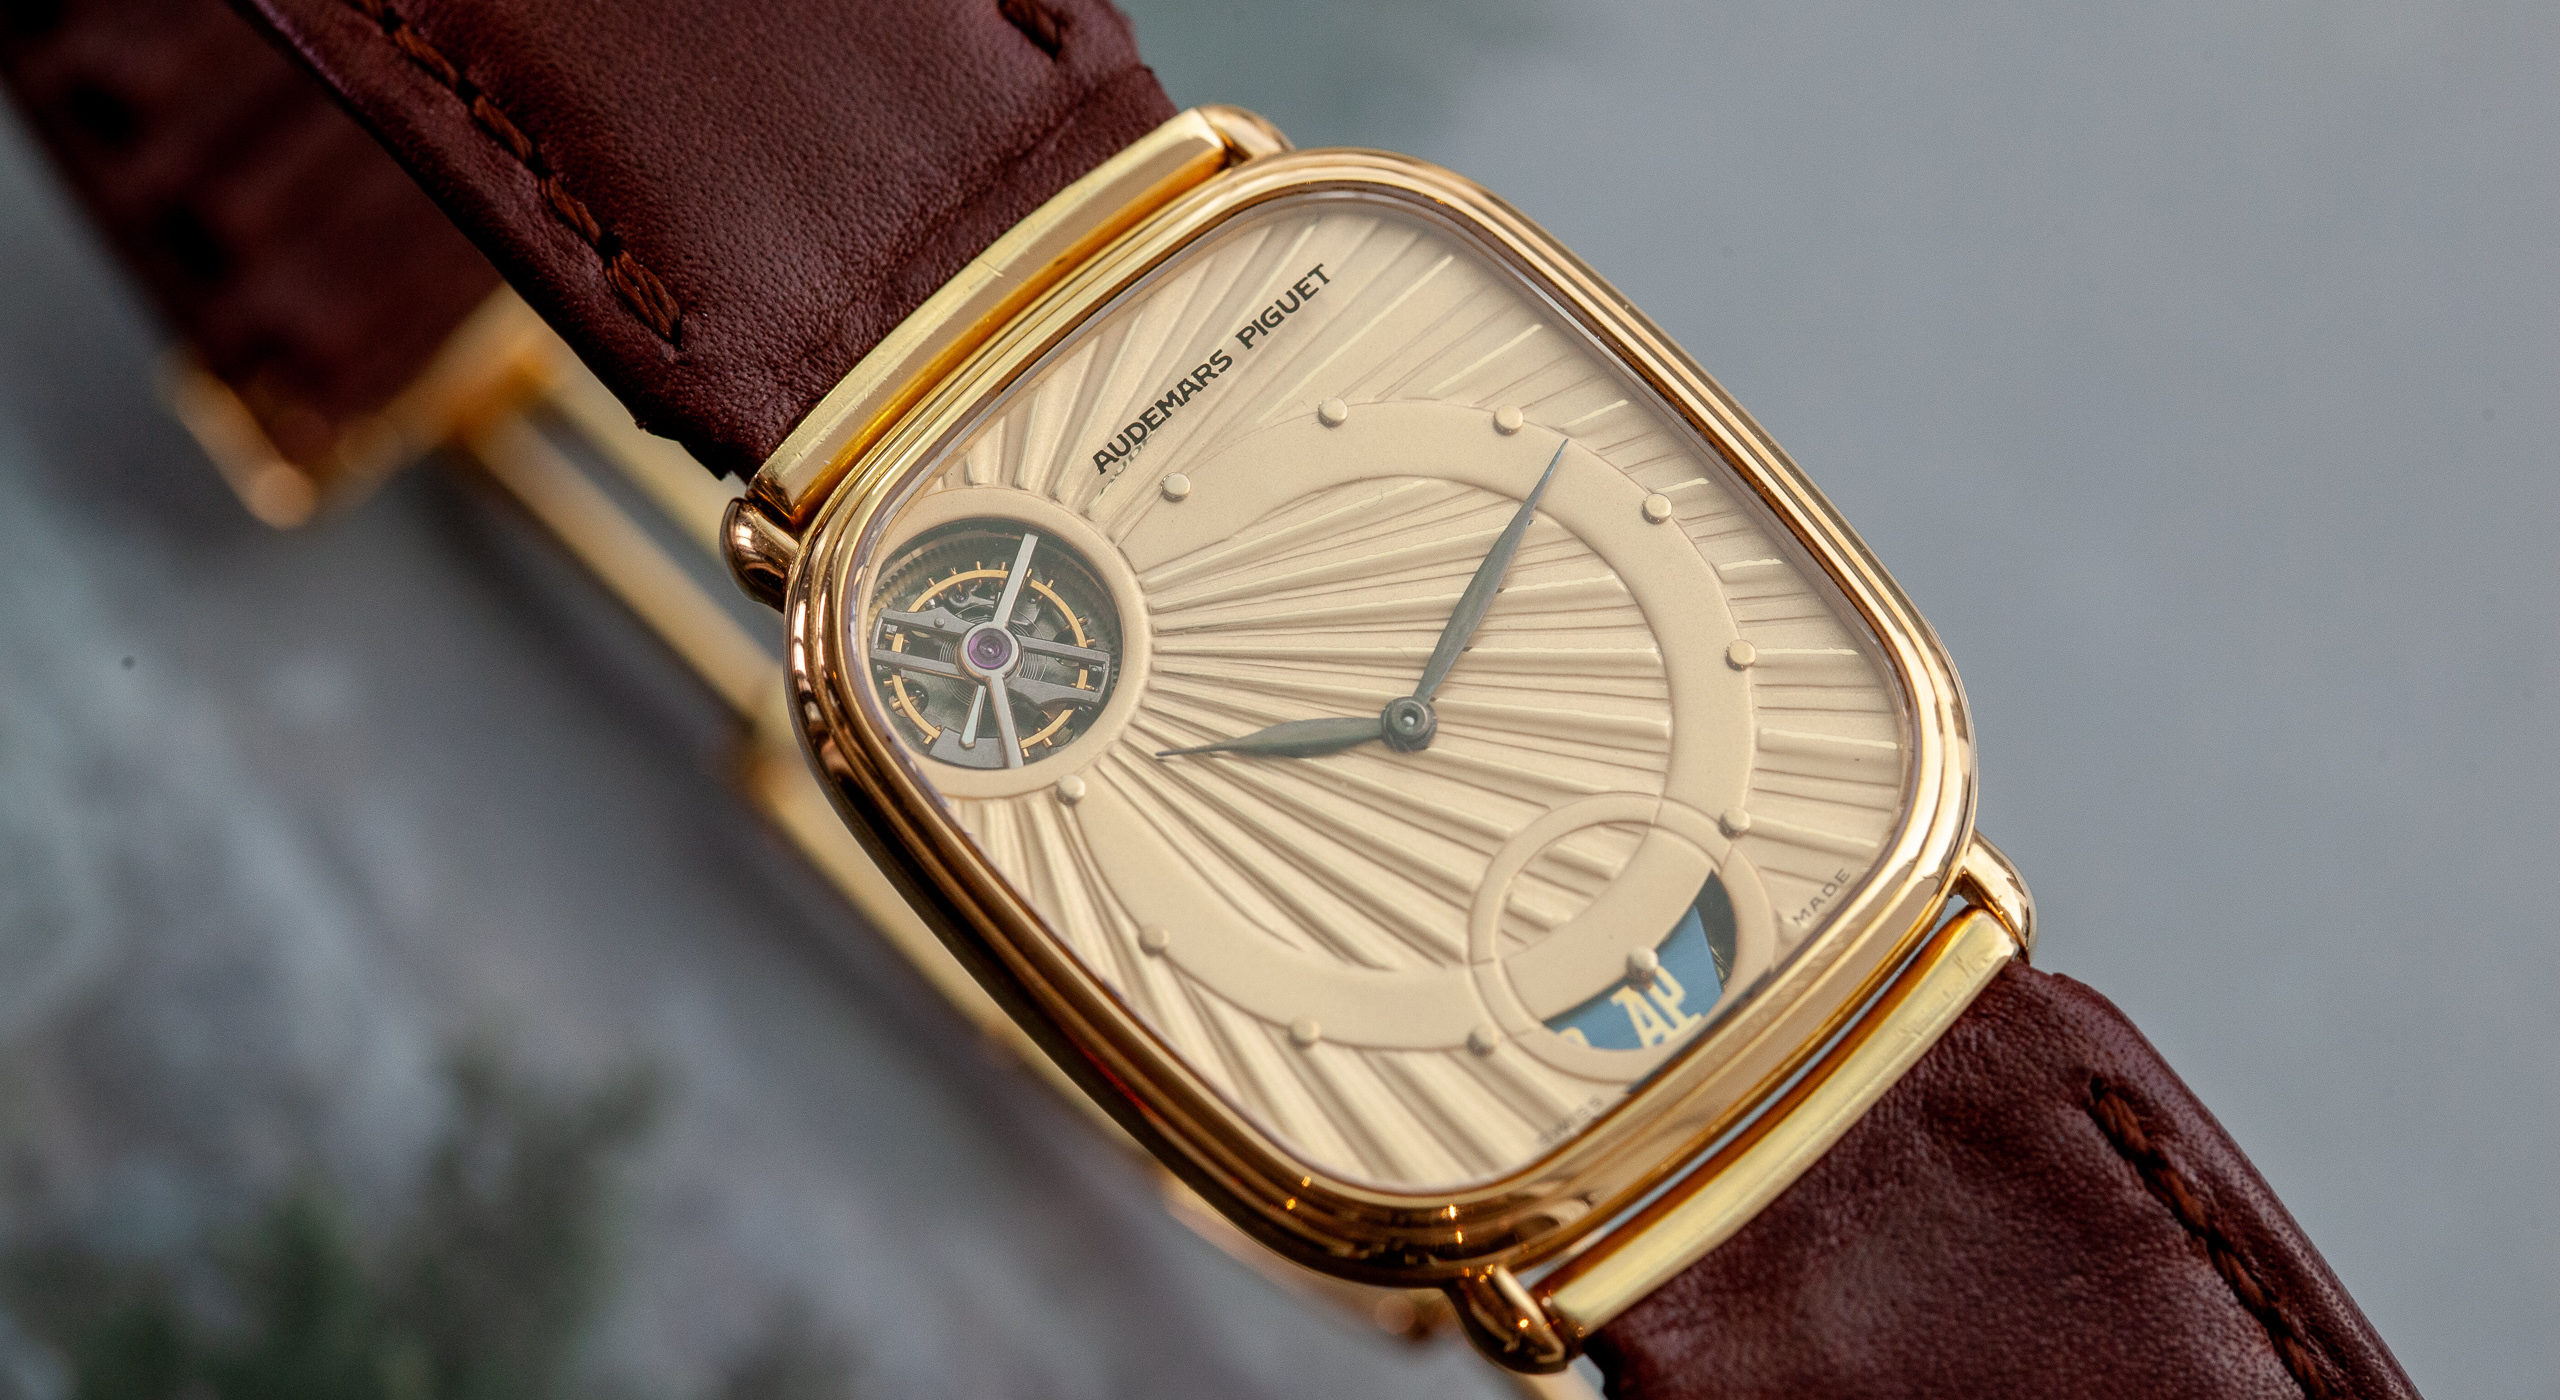 RECOMMENDED READING: In conversation with Audemars Piguet historian Michael Friedman